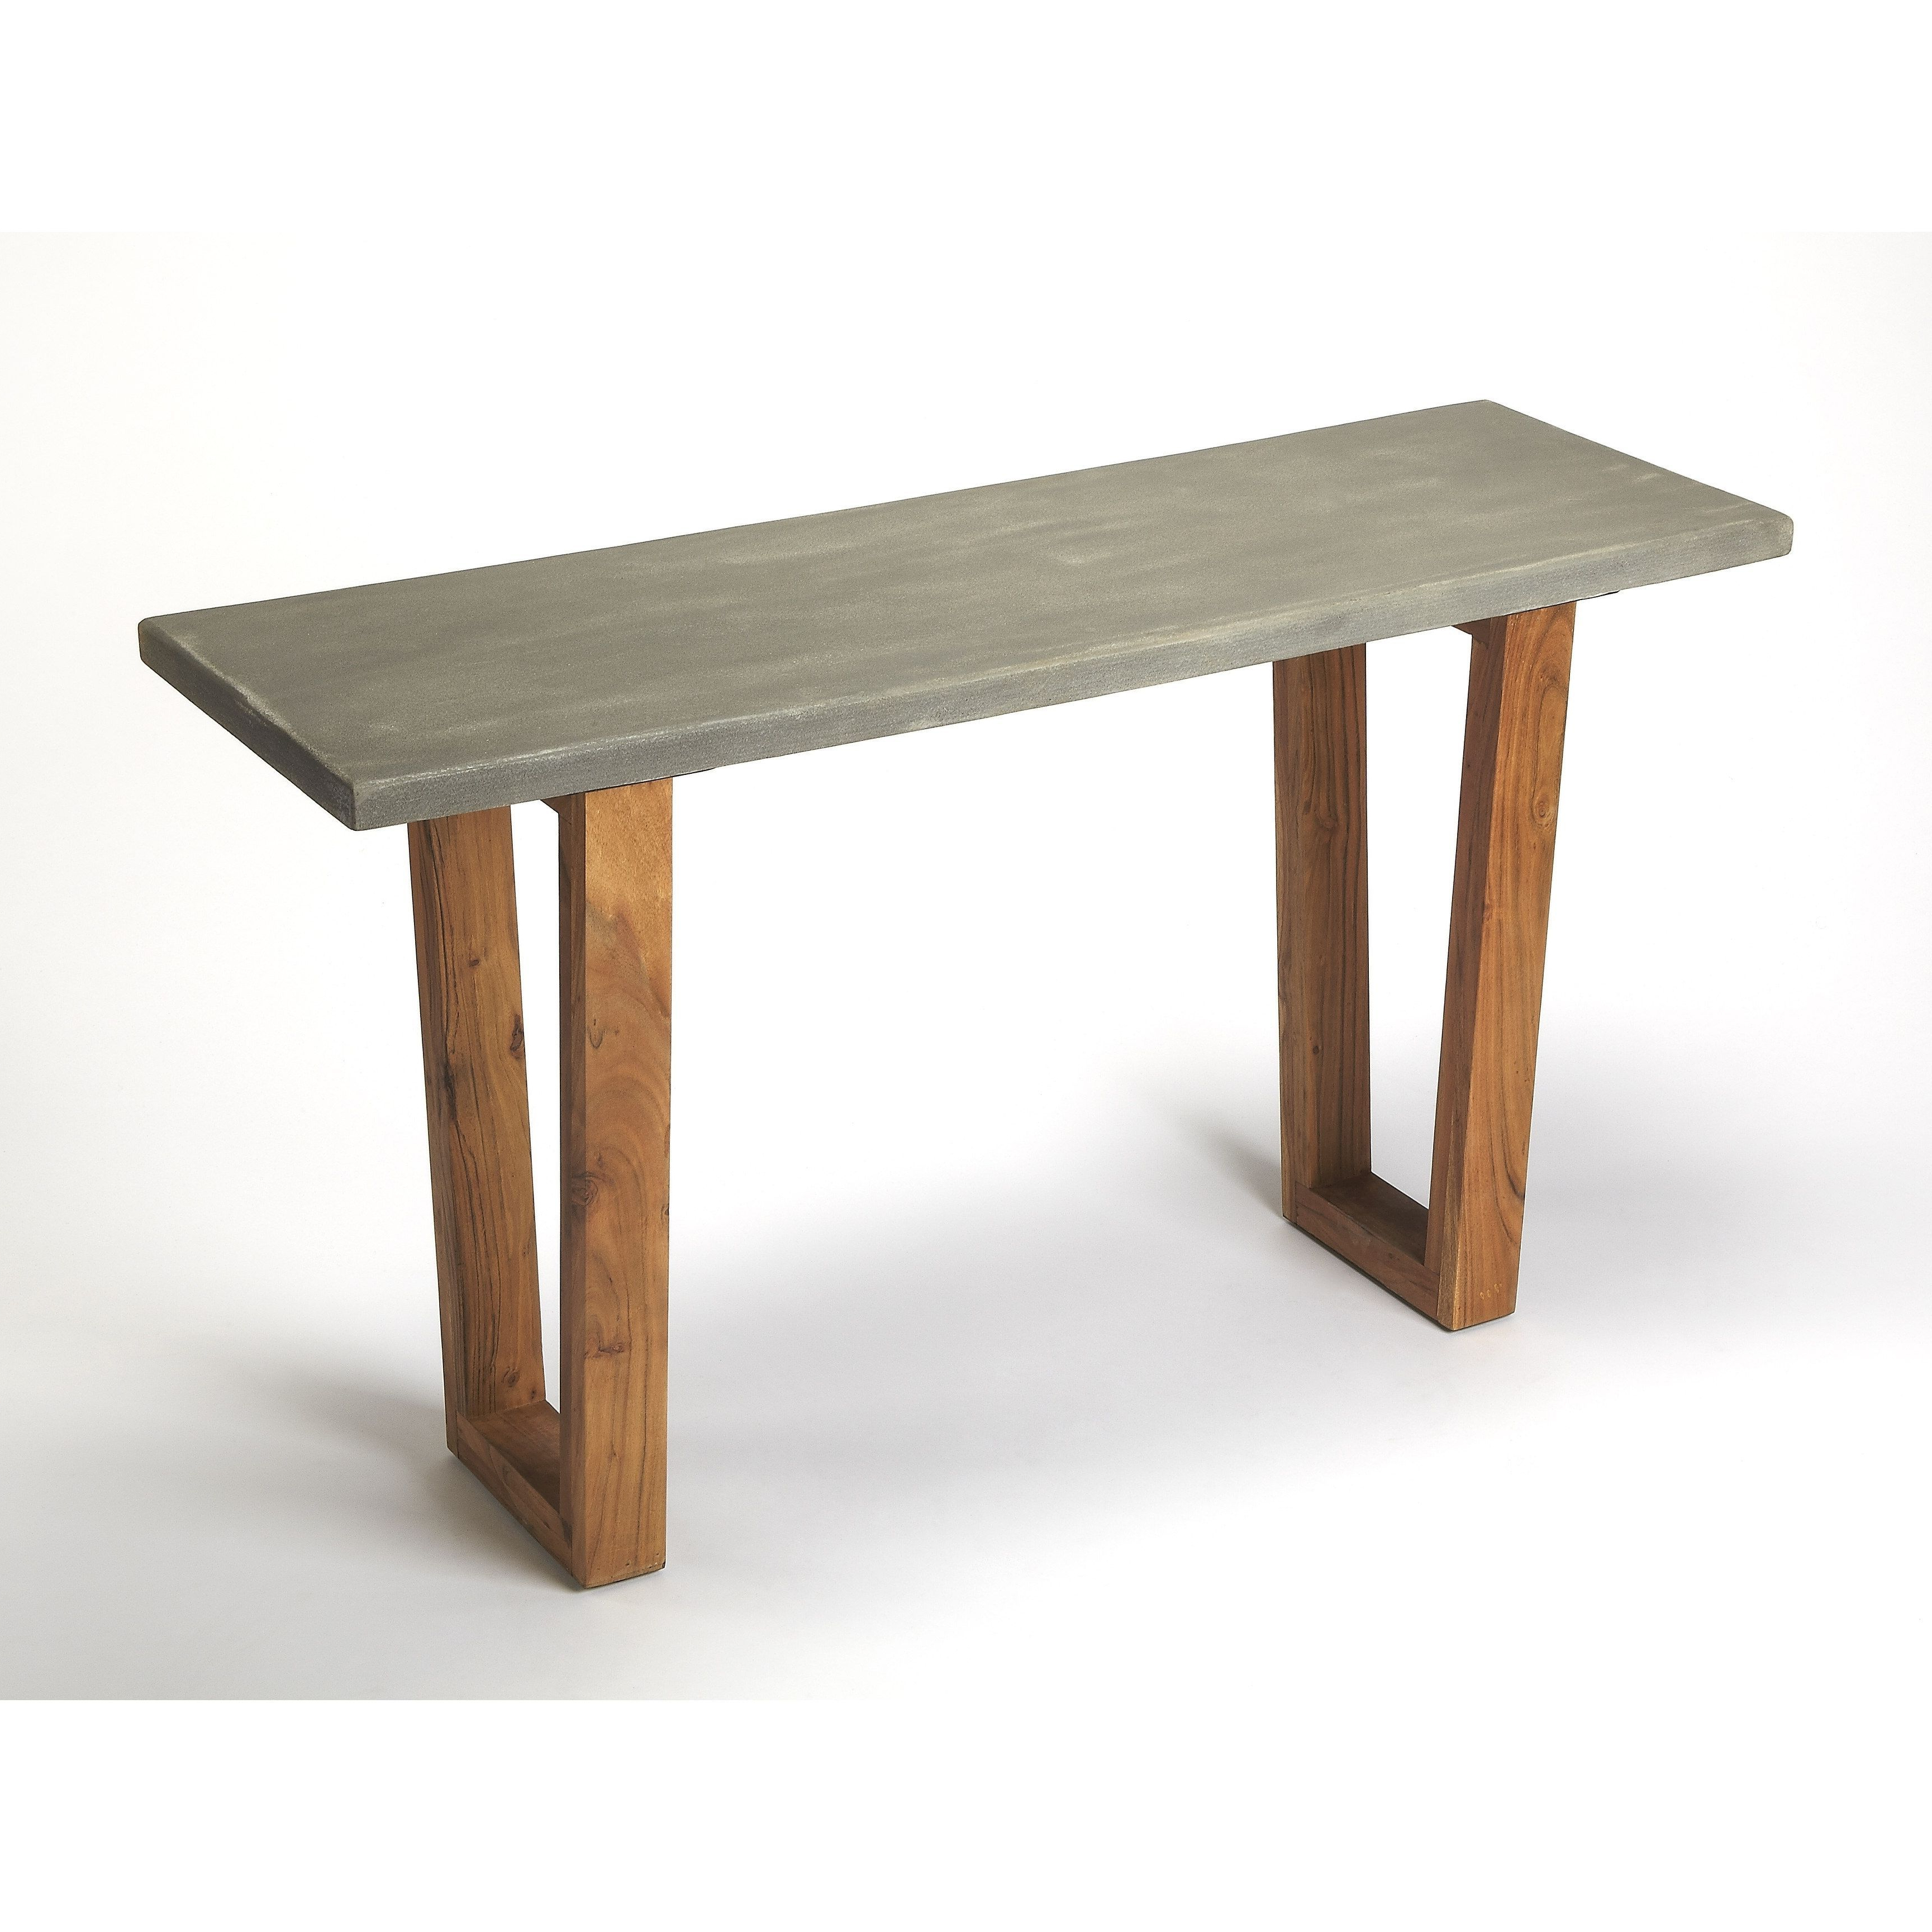 Butler Massey Concrete & Wood Console Table, Multi | Products Inside Yukon Natural Console Tables (View 16 of 20)